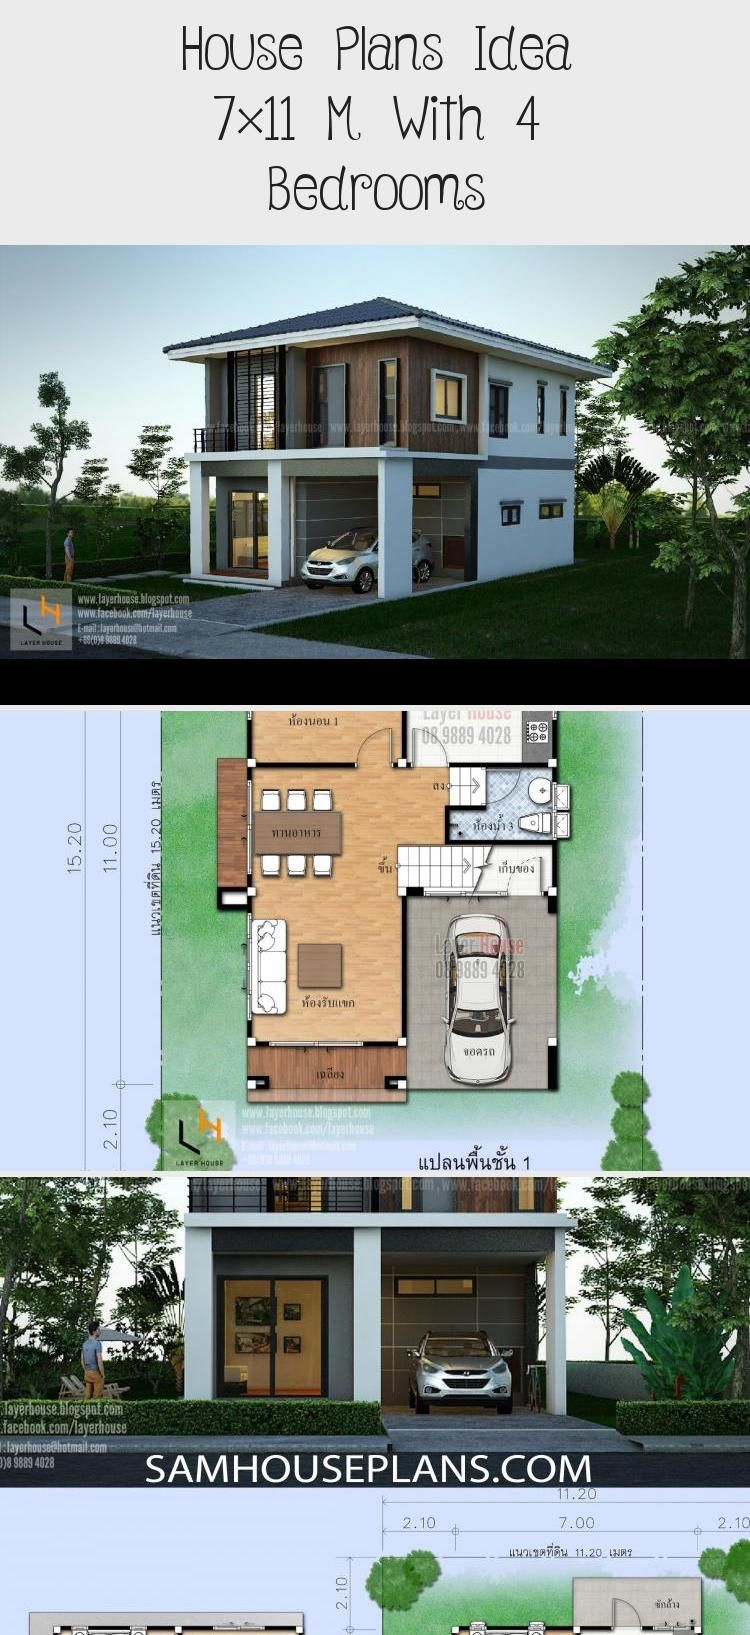 House Plans Idea 7x11 M With 4 Bedrooms Sam House Plans Smallhouseplans3bedroom Smallhouseplansundersqft In 2020 Small House Plans House Styles Country House Plans